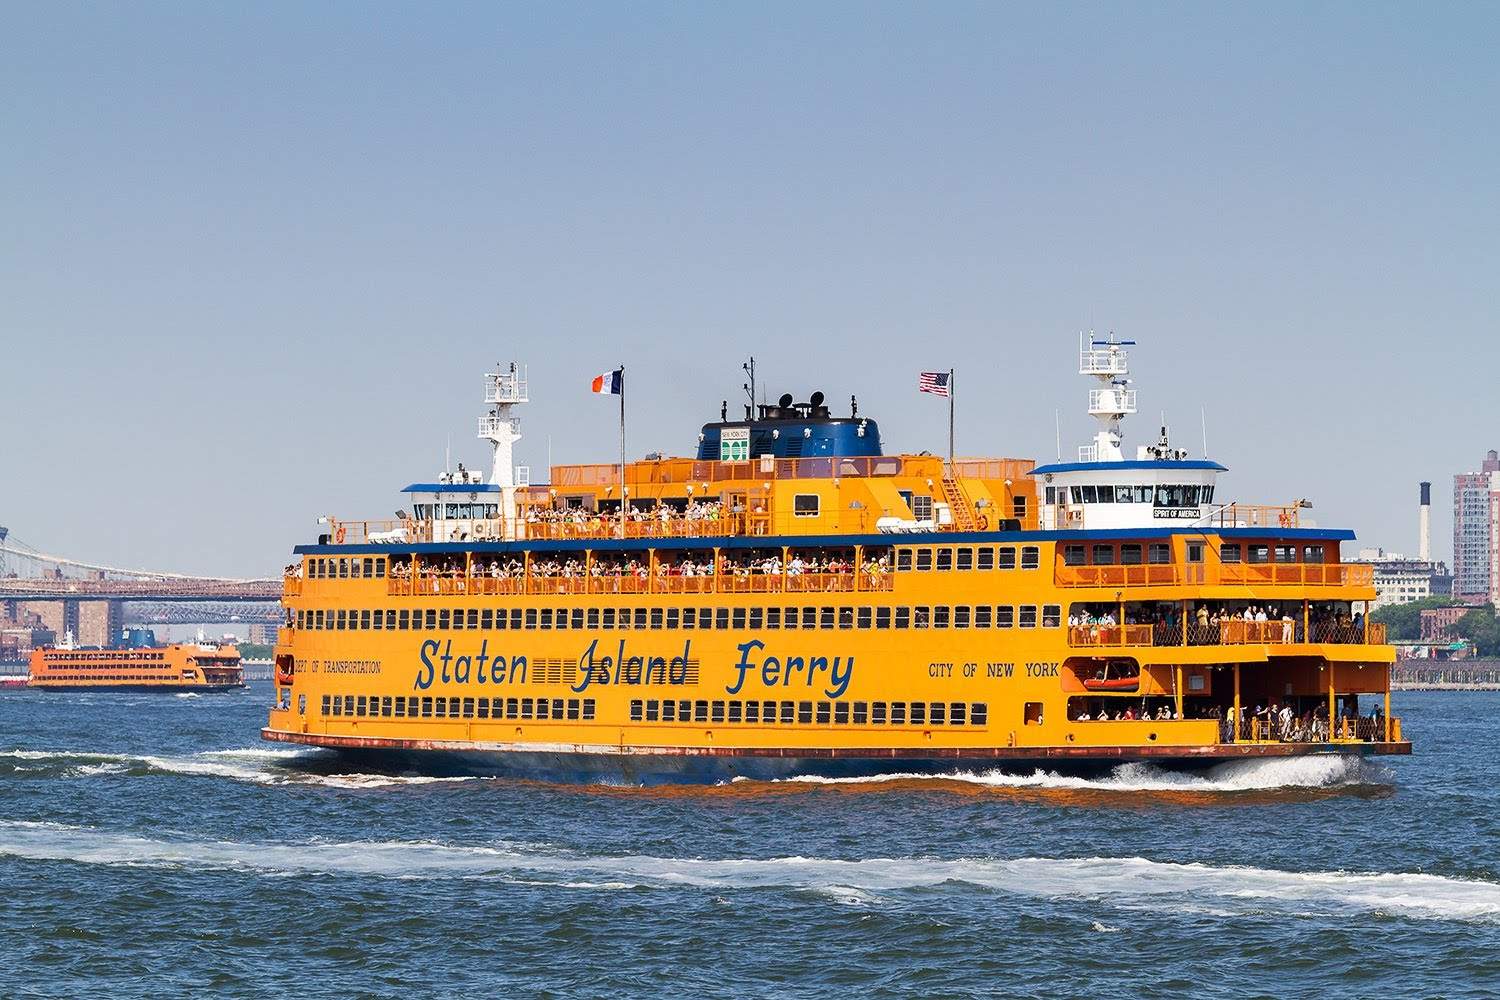 Staten Island Ferry as seen on Tourist's Website